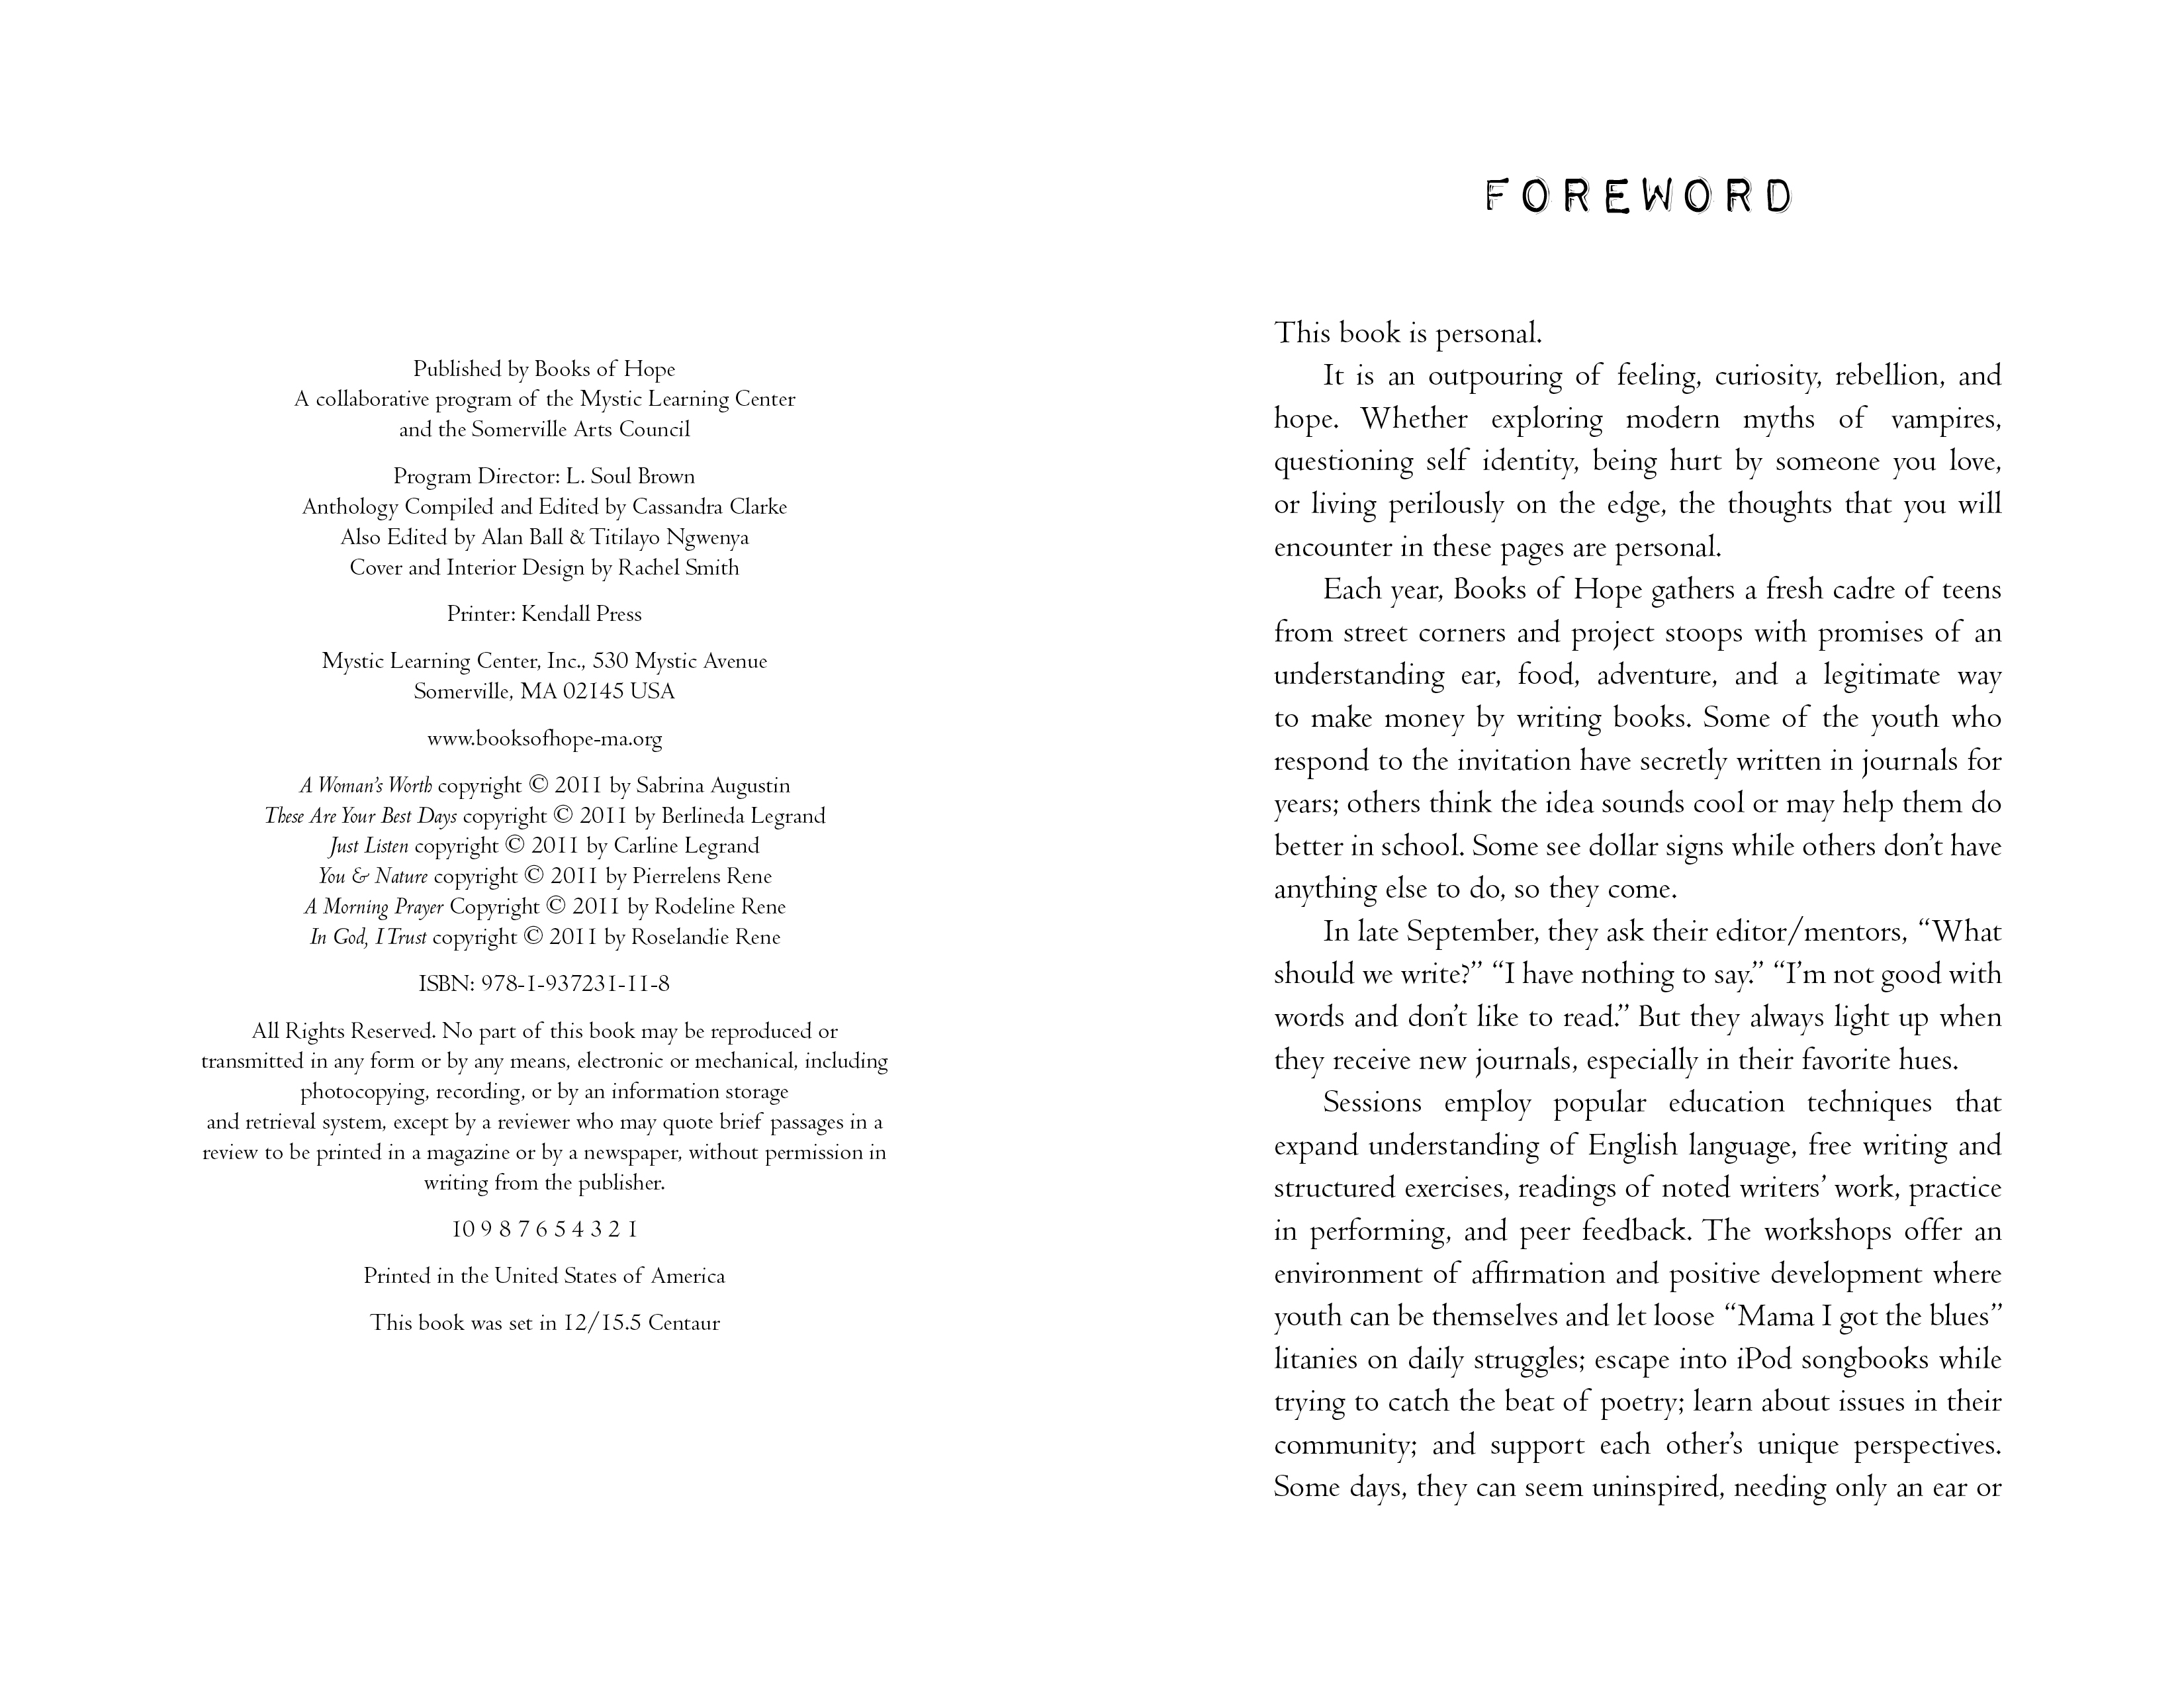 Foreword for BOOKS OF HOPE 2011 editions